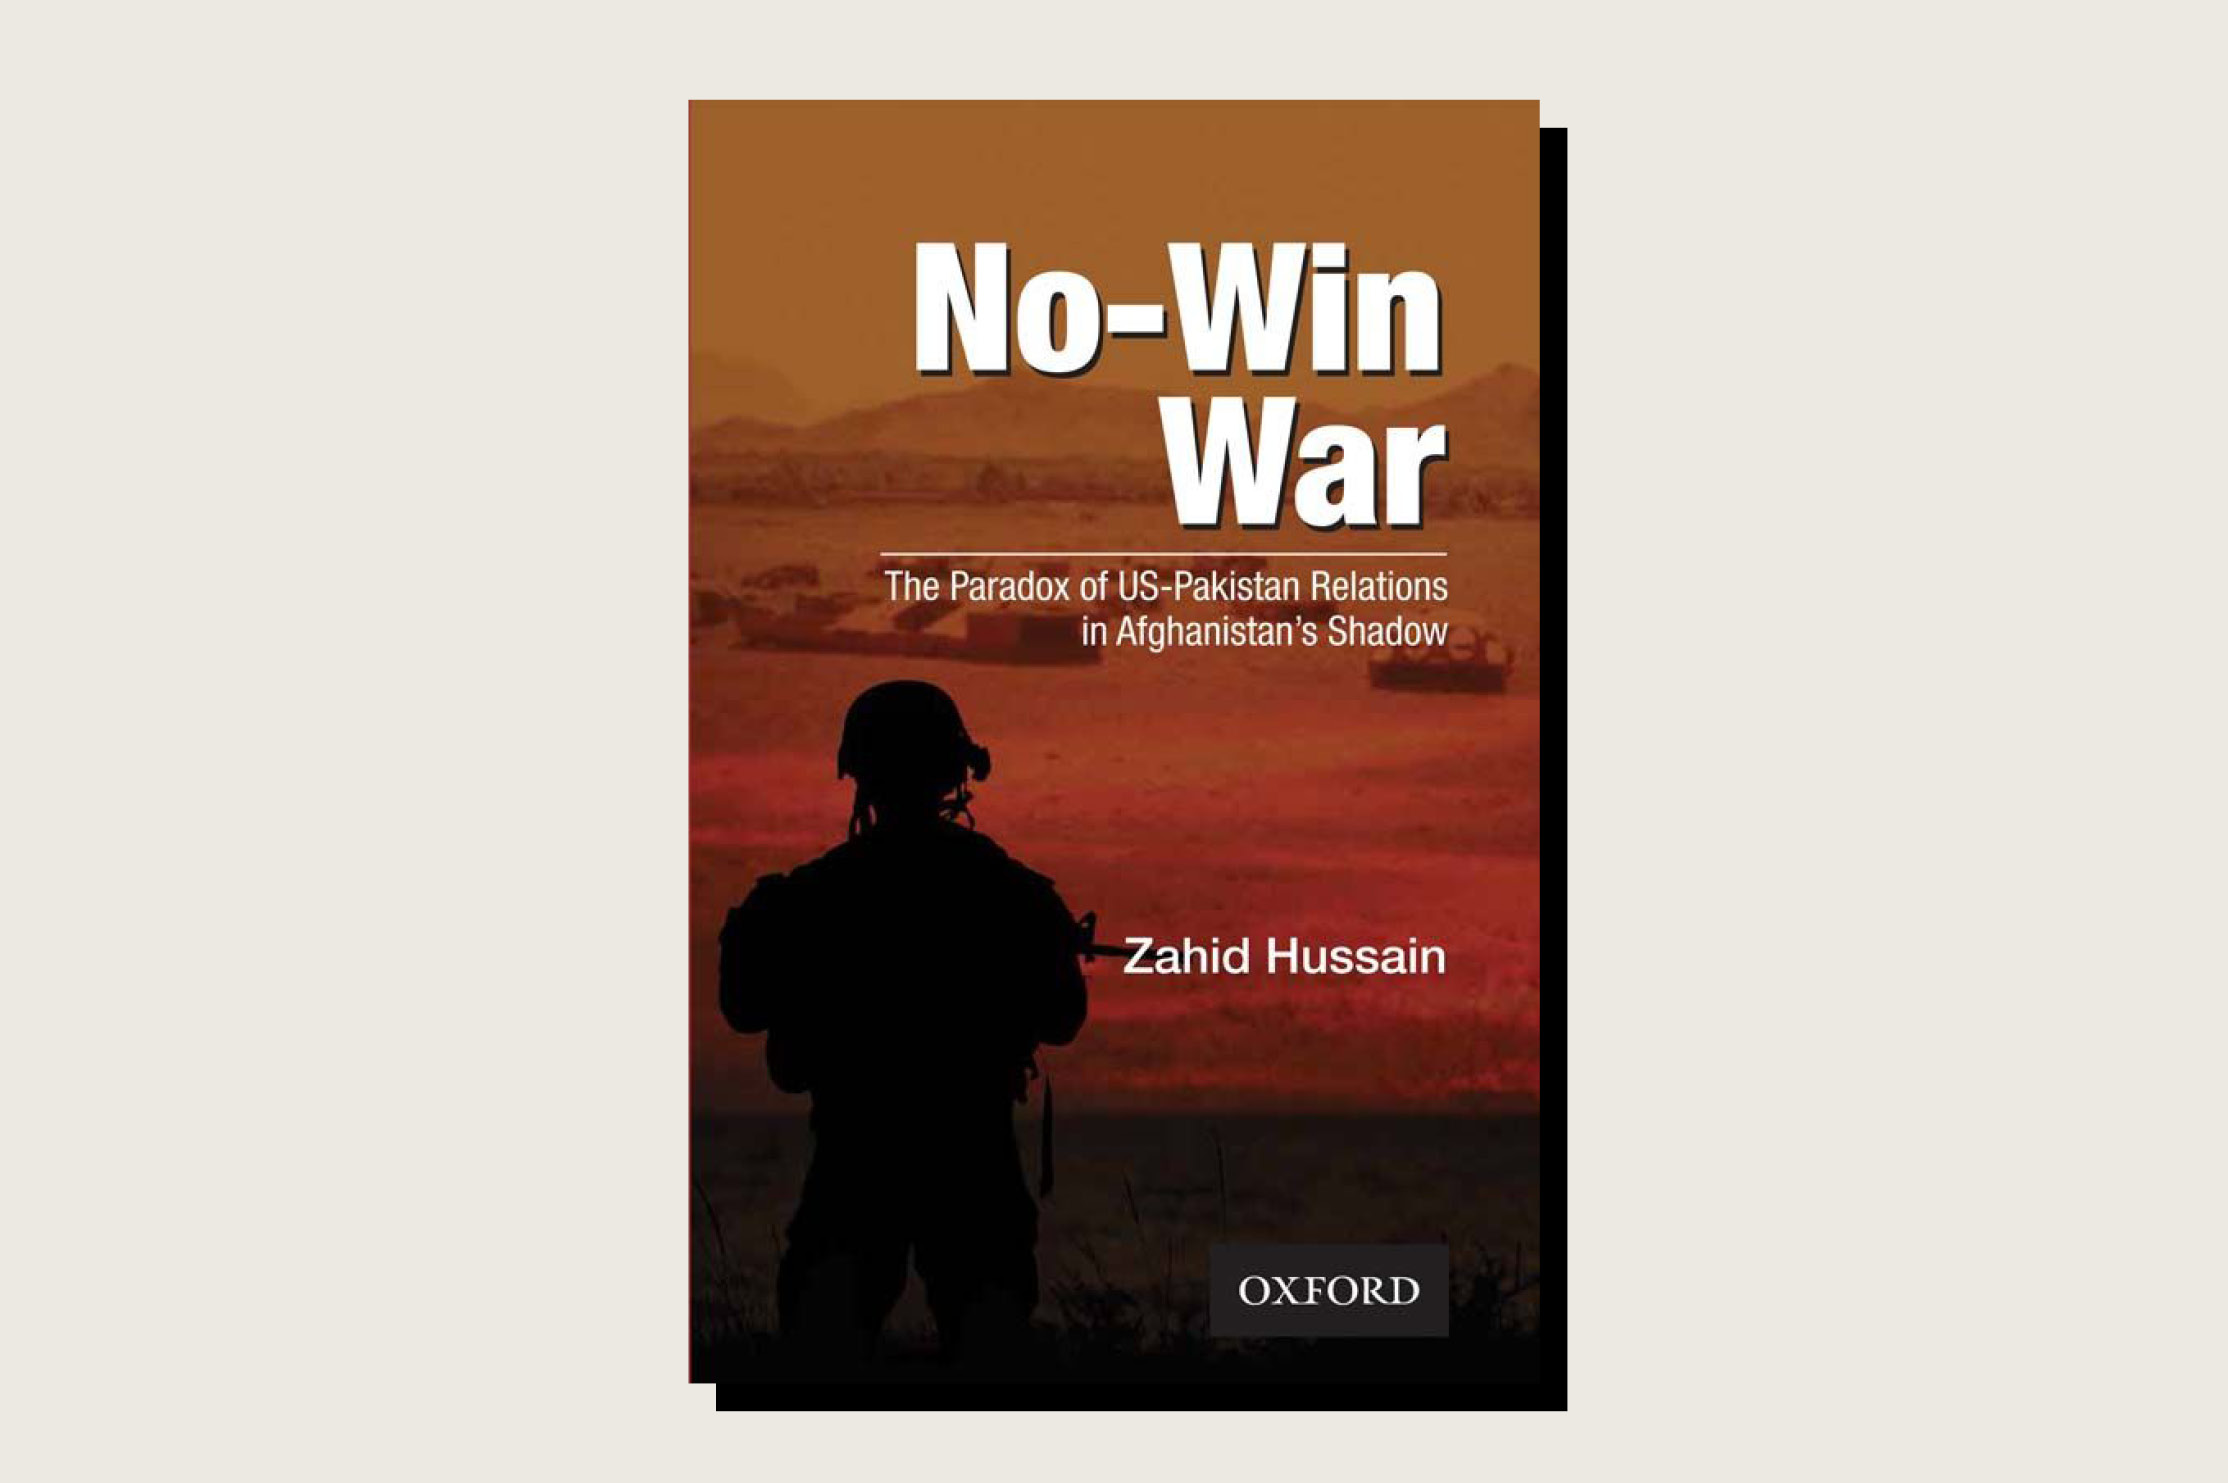 No-Win War: The Paradox of US-Pakistan Relations in Afghanistan's Shadow, Zahid Hussain, Oxford University Press Pakistan, 372 pp., April 2021.